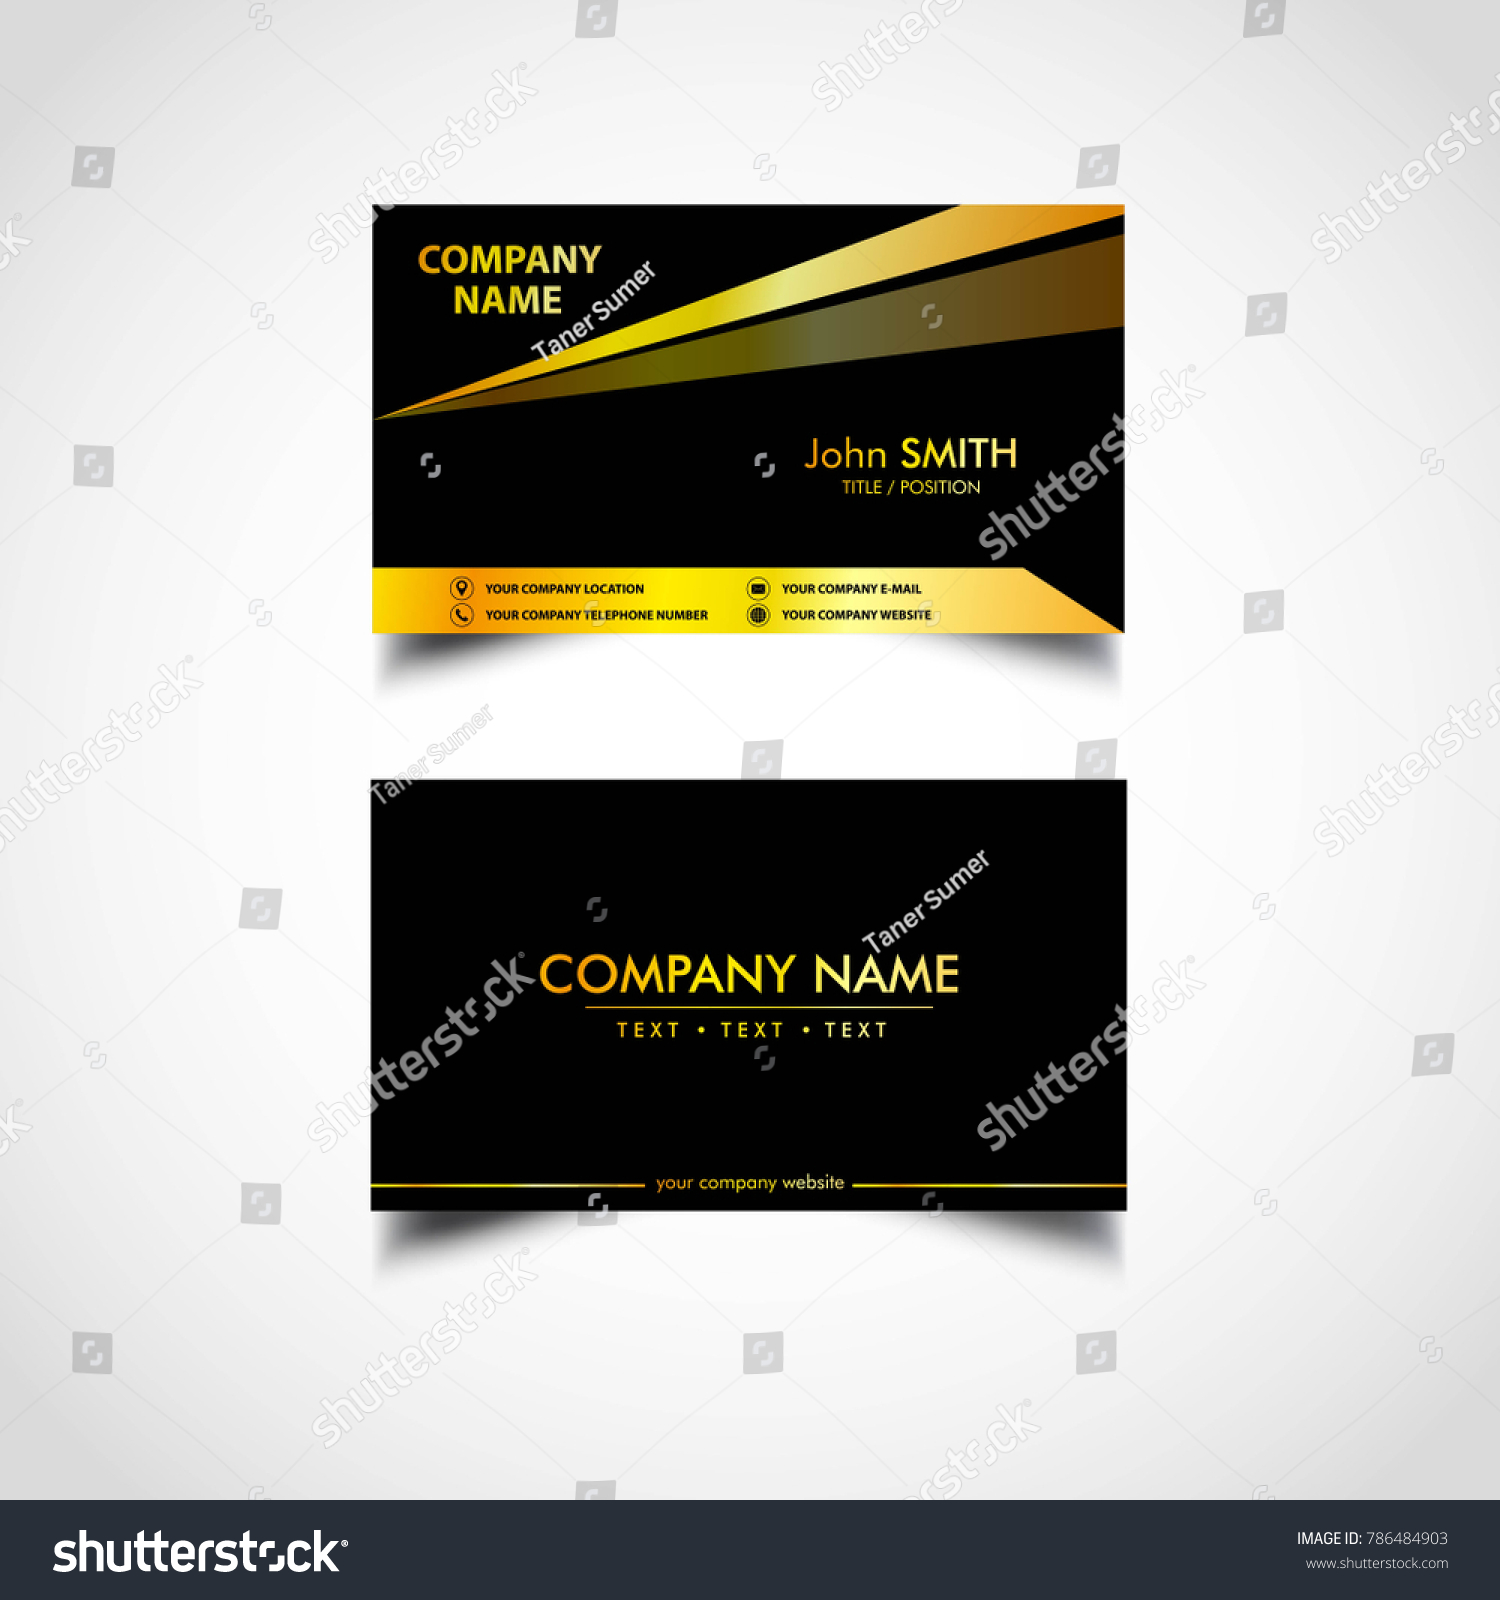 Golden Business Card Template Us Size Stock Vector 786484903 ...